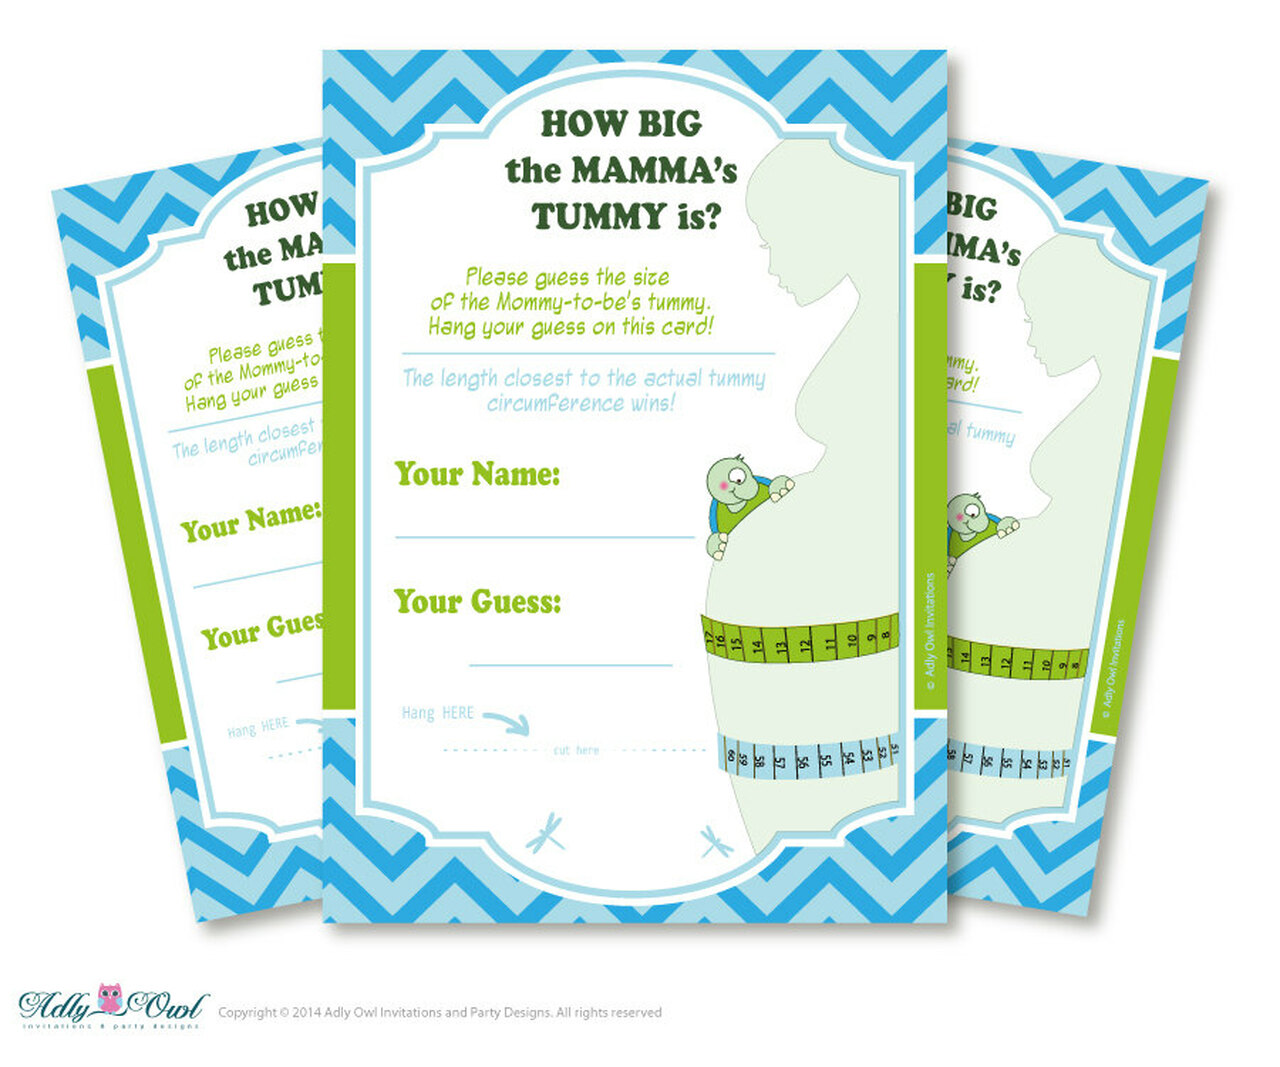 Boy Turtle How Big the MAMMA's TUMMY is Game, guess belly game Printable  Card for Baby Turtle Shower DIY Blue Green Chevron